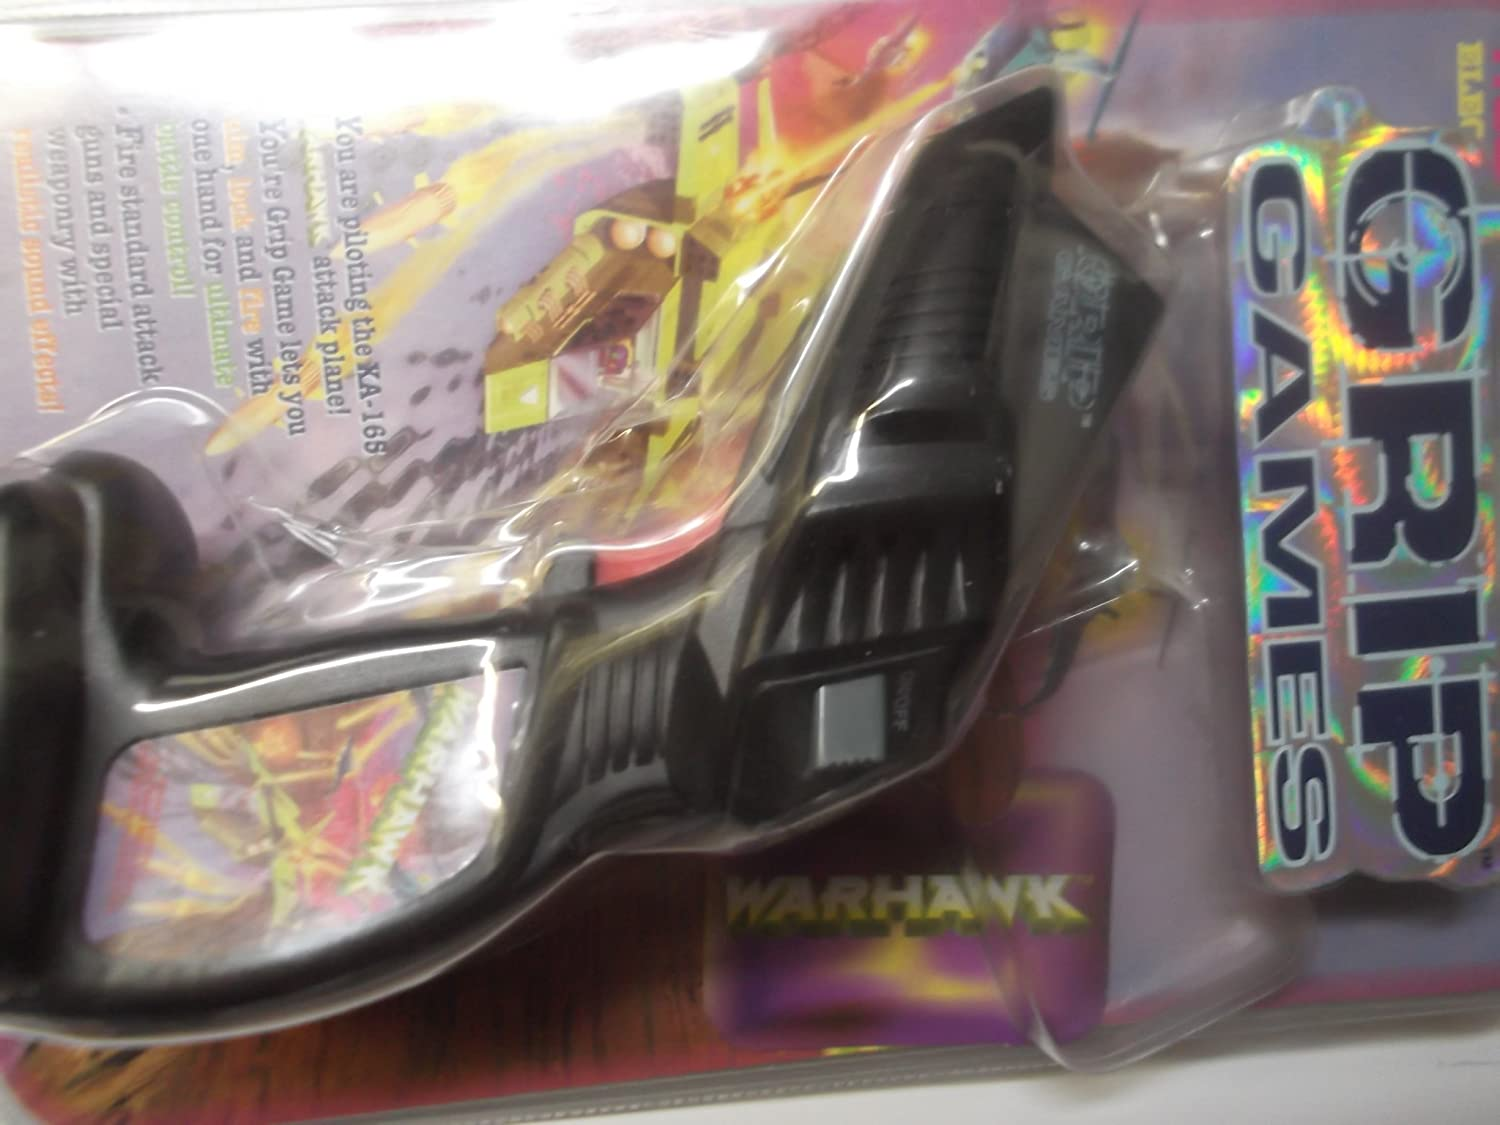 Sony Free shipping Grip Games Game Popular products Handheld Warhawk